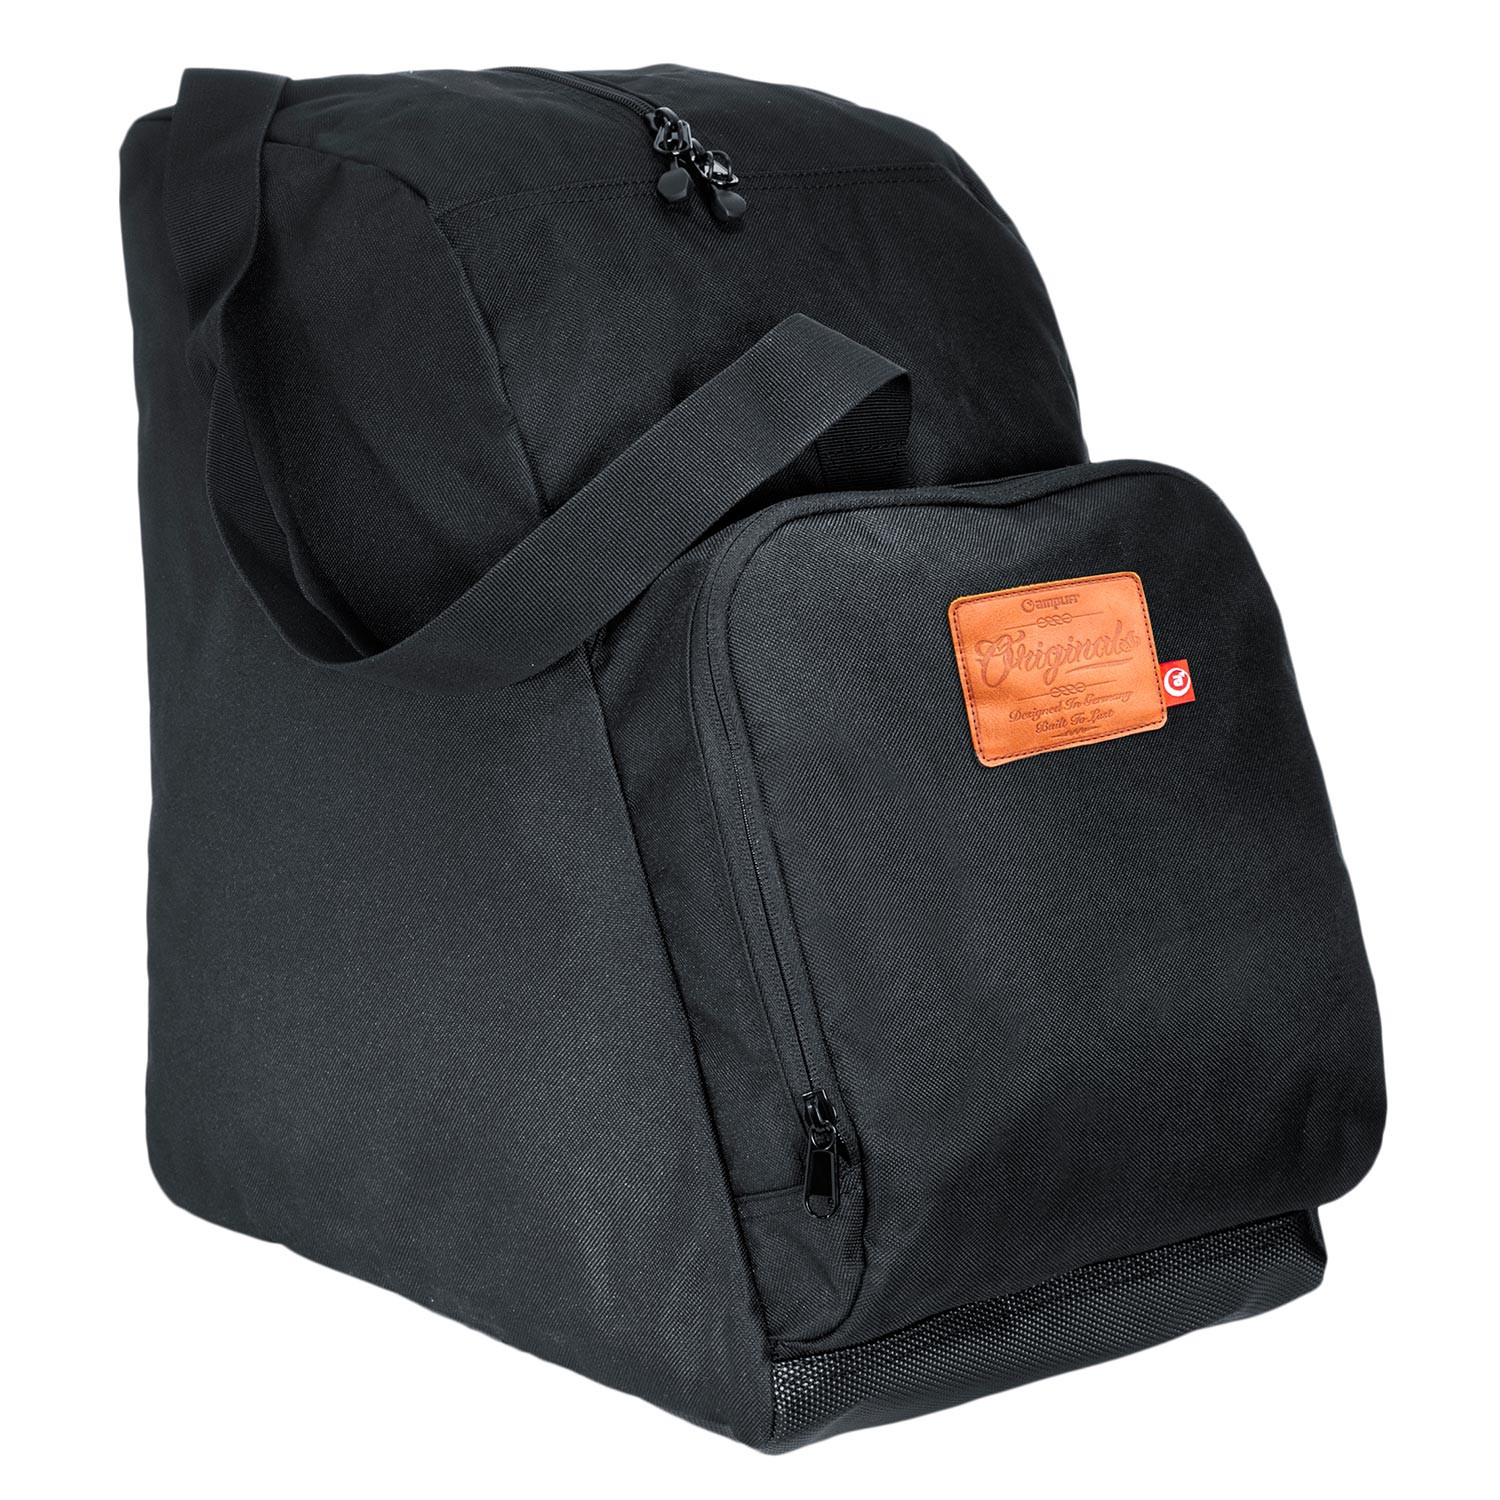 Obal na snowboard Amplifi Boot Pouch black